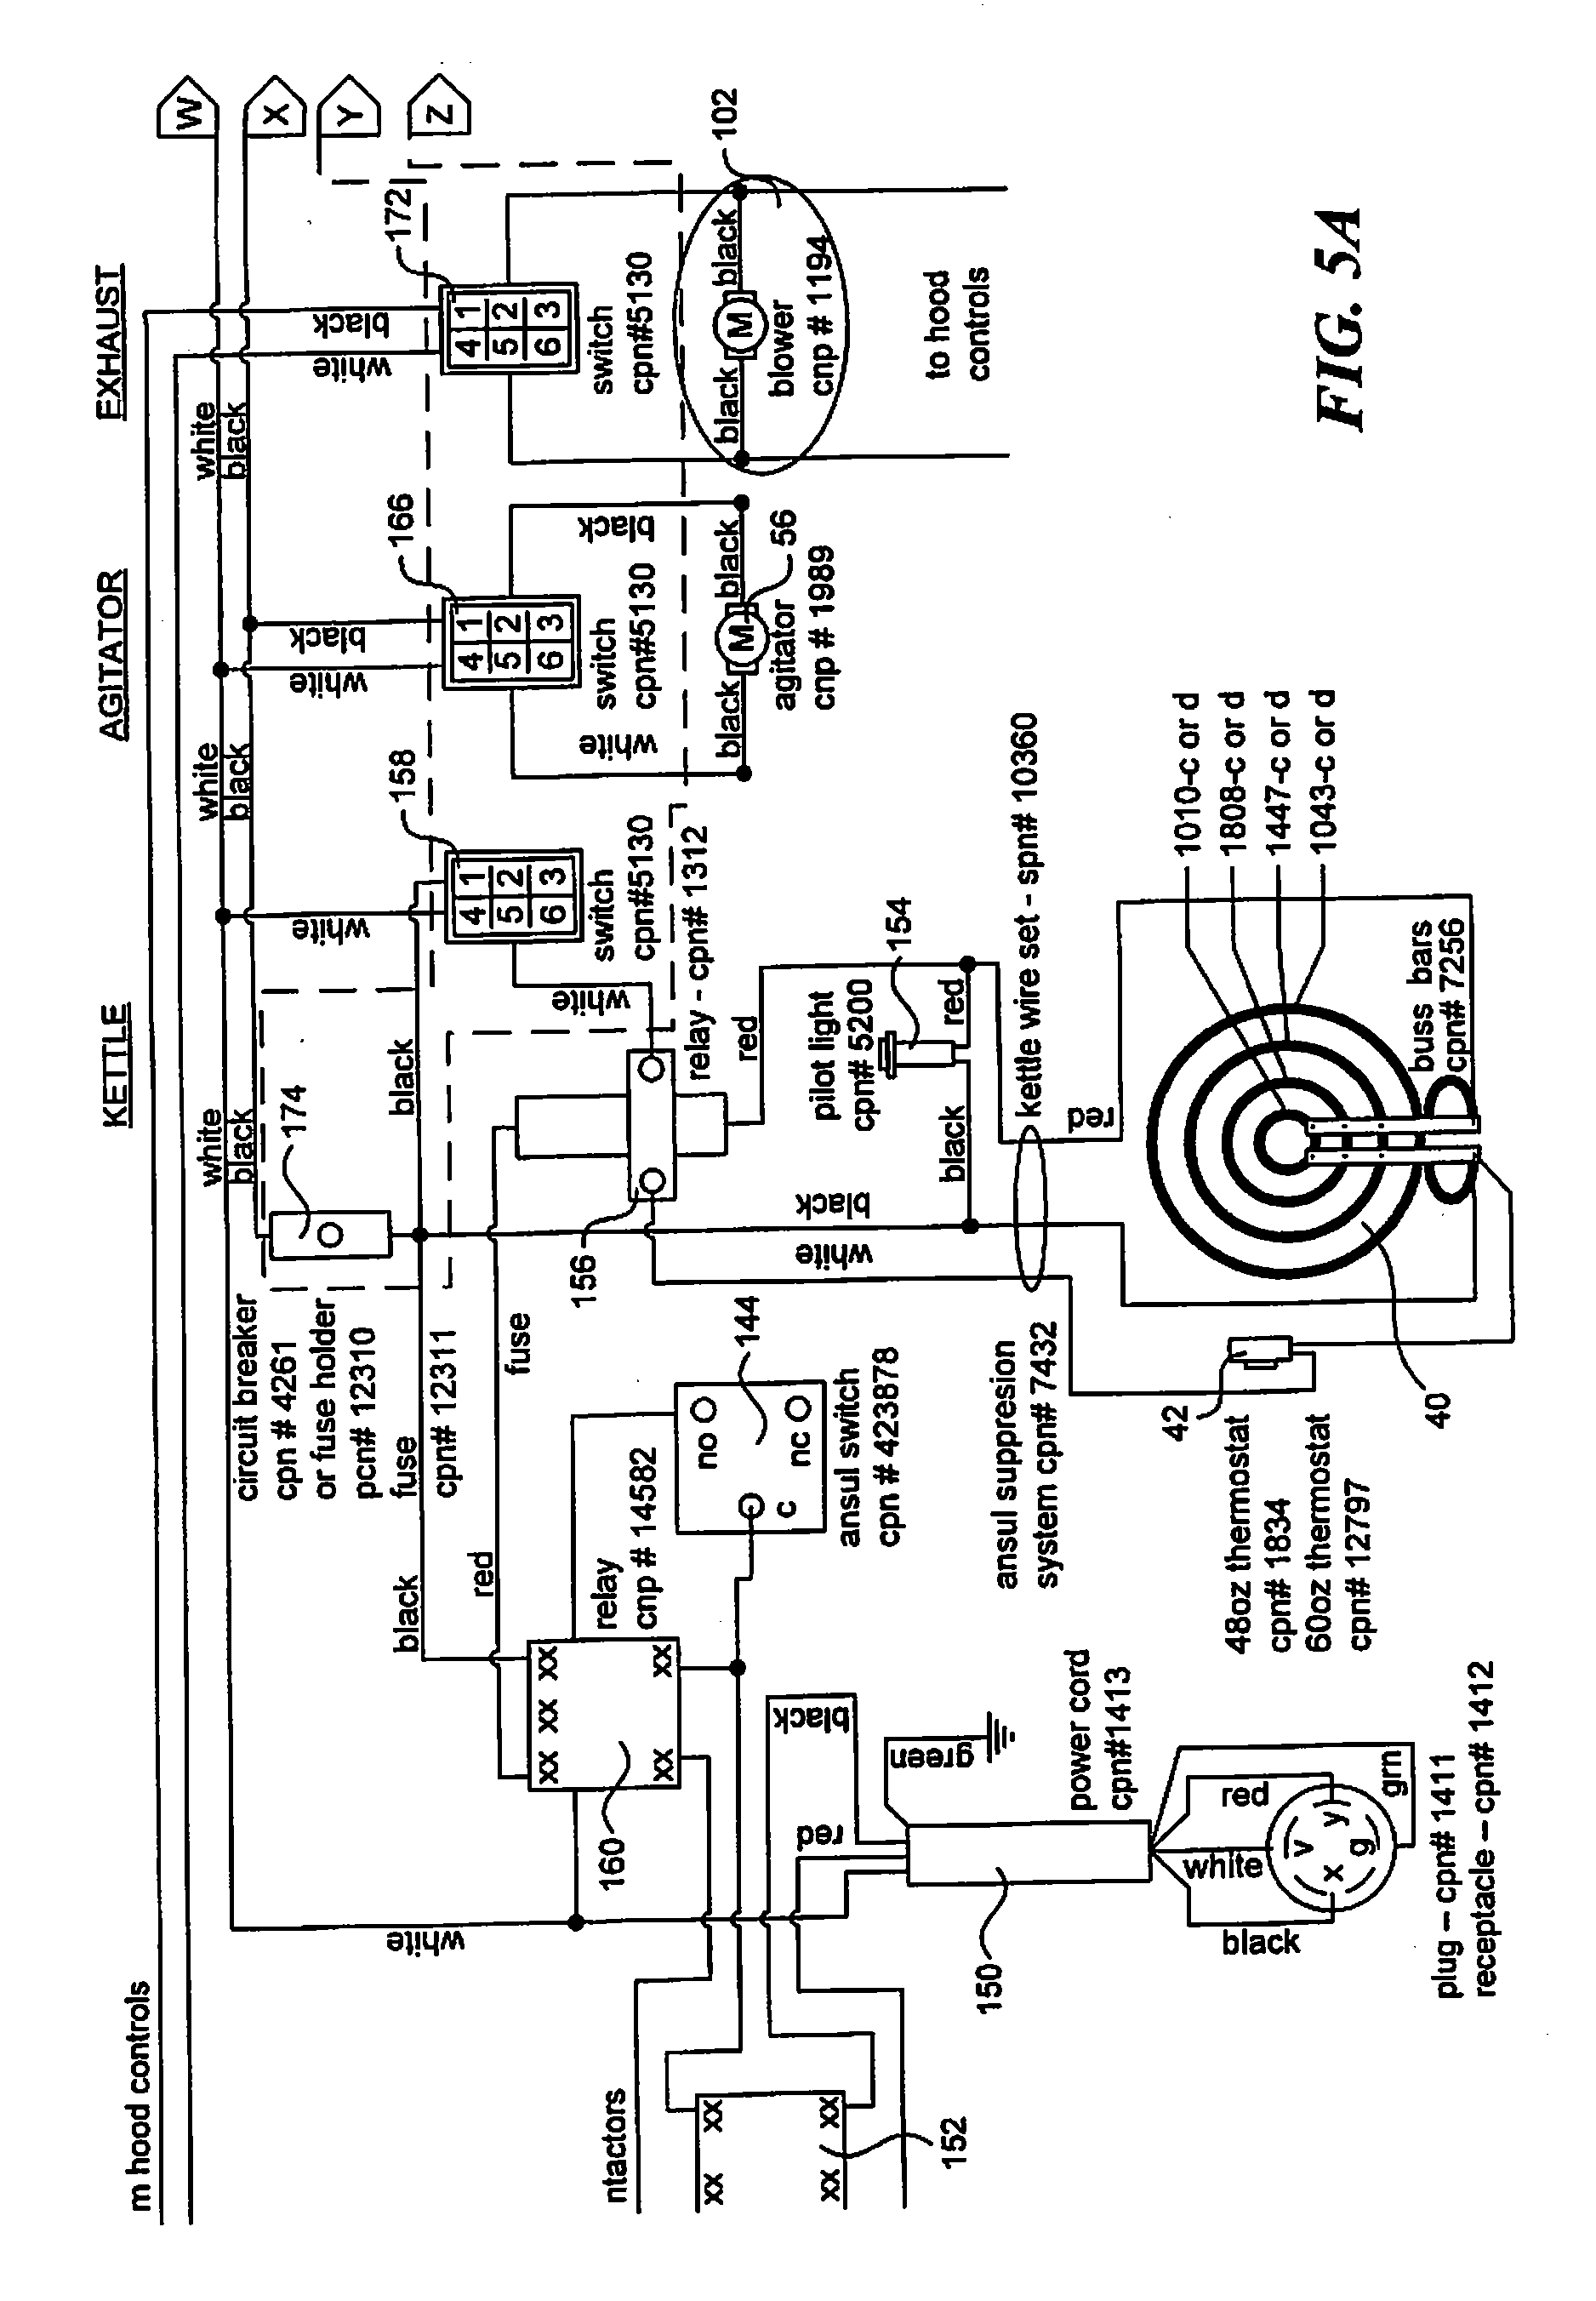 gold medal popcorn machine wiring diagram 41 wiring Wiring-Diagram Kettle Popcorn Sewing Machine Wiring Diagram